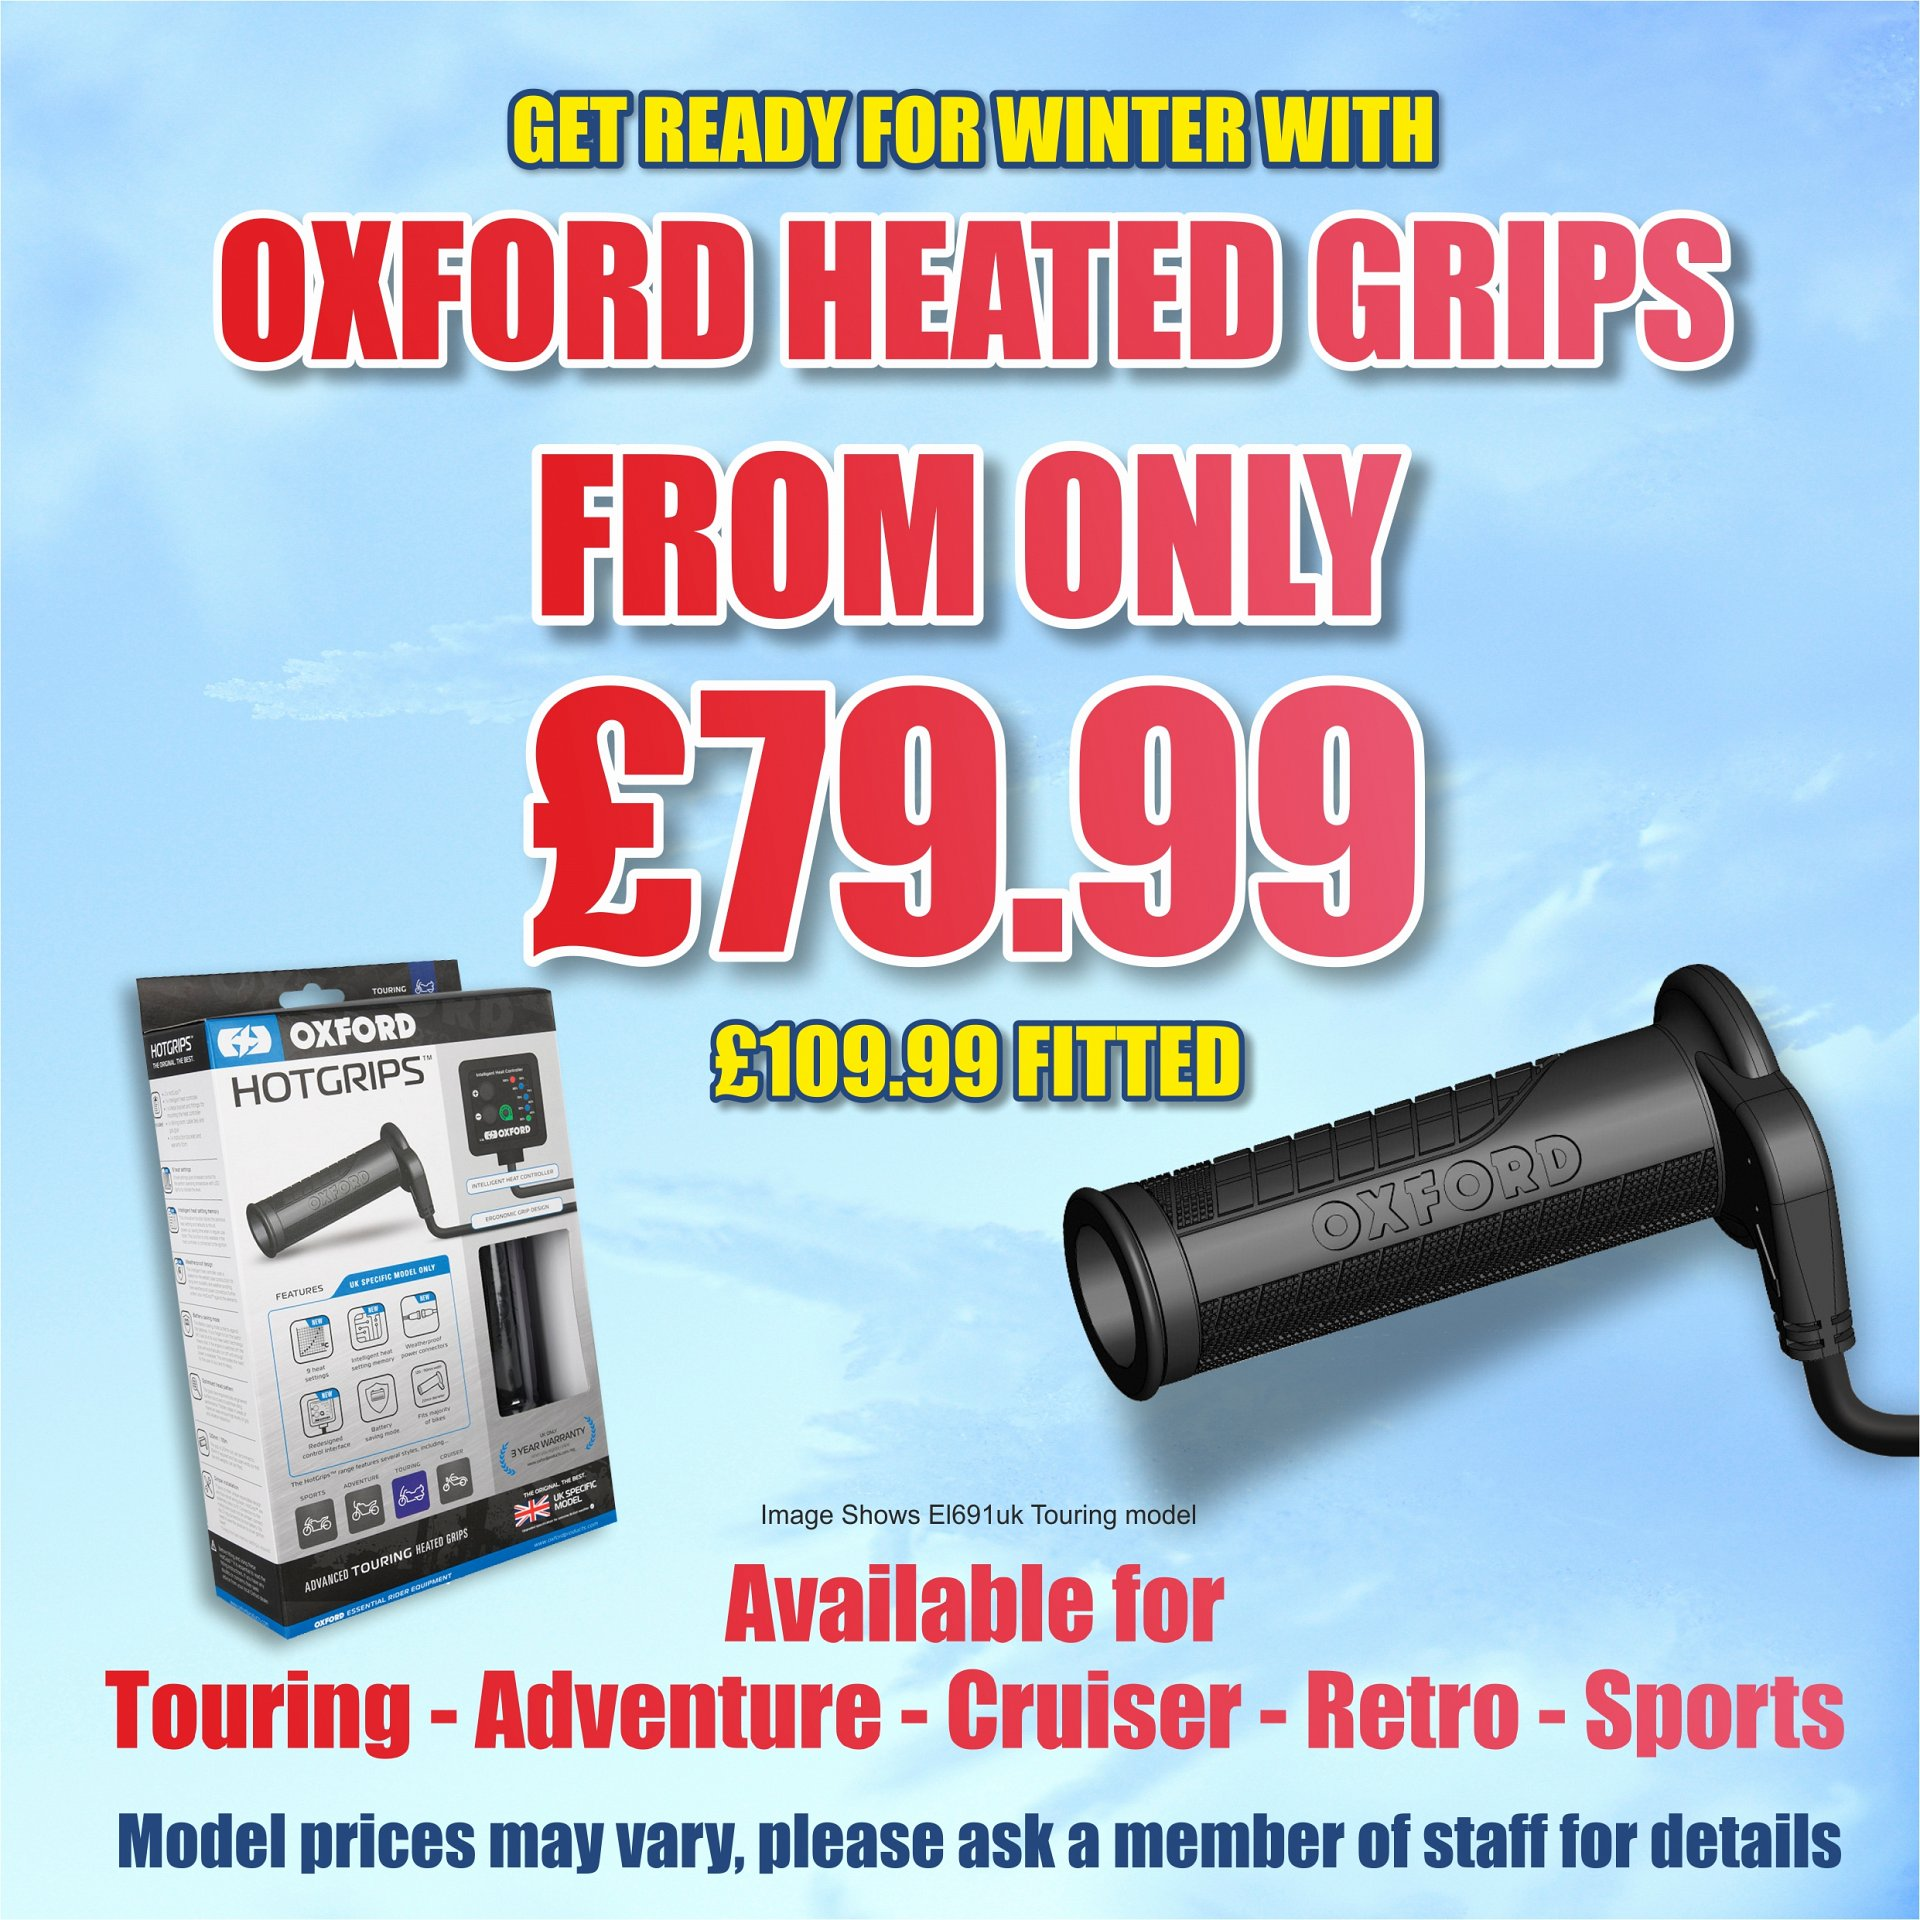 Get a set of Oxford Heated Grips and fitting for only £109.99